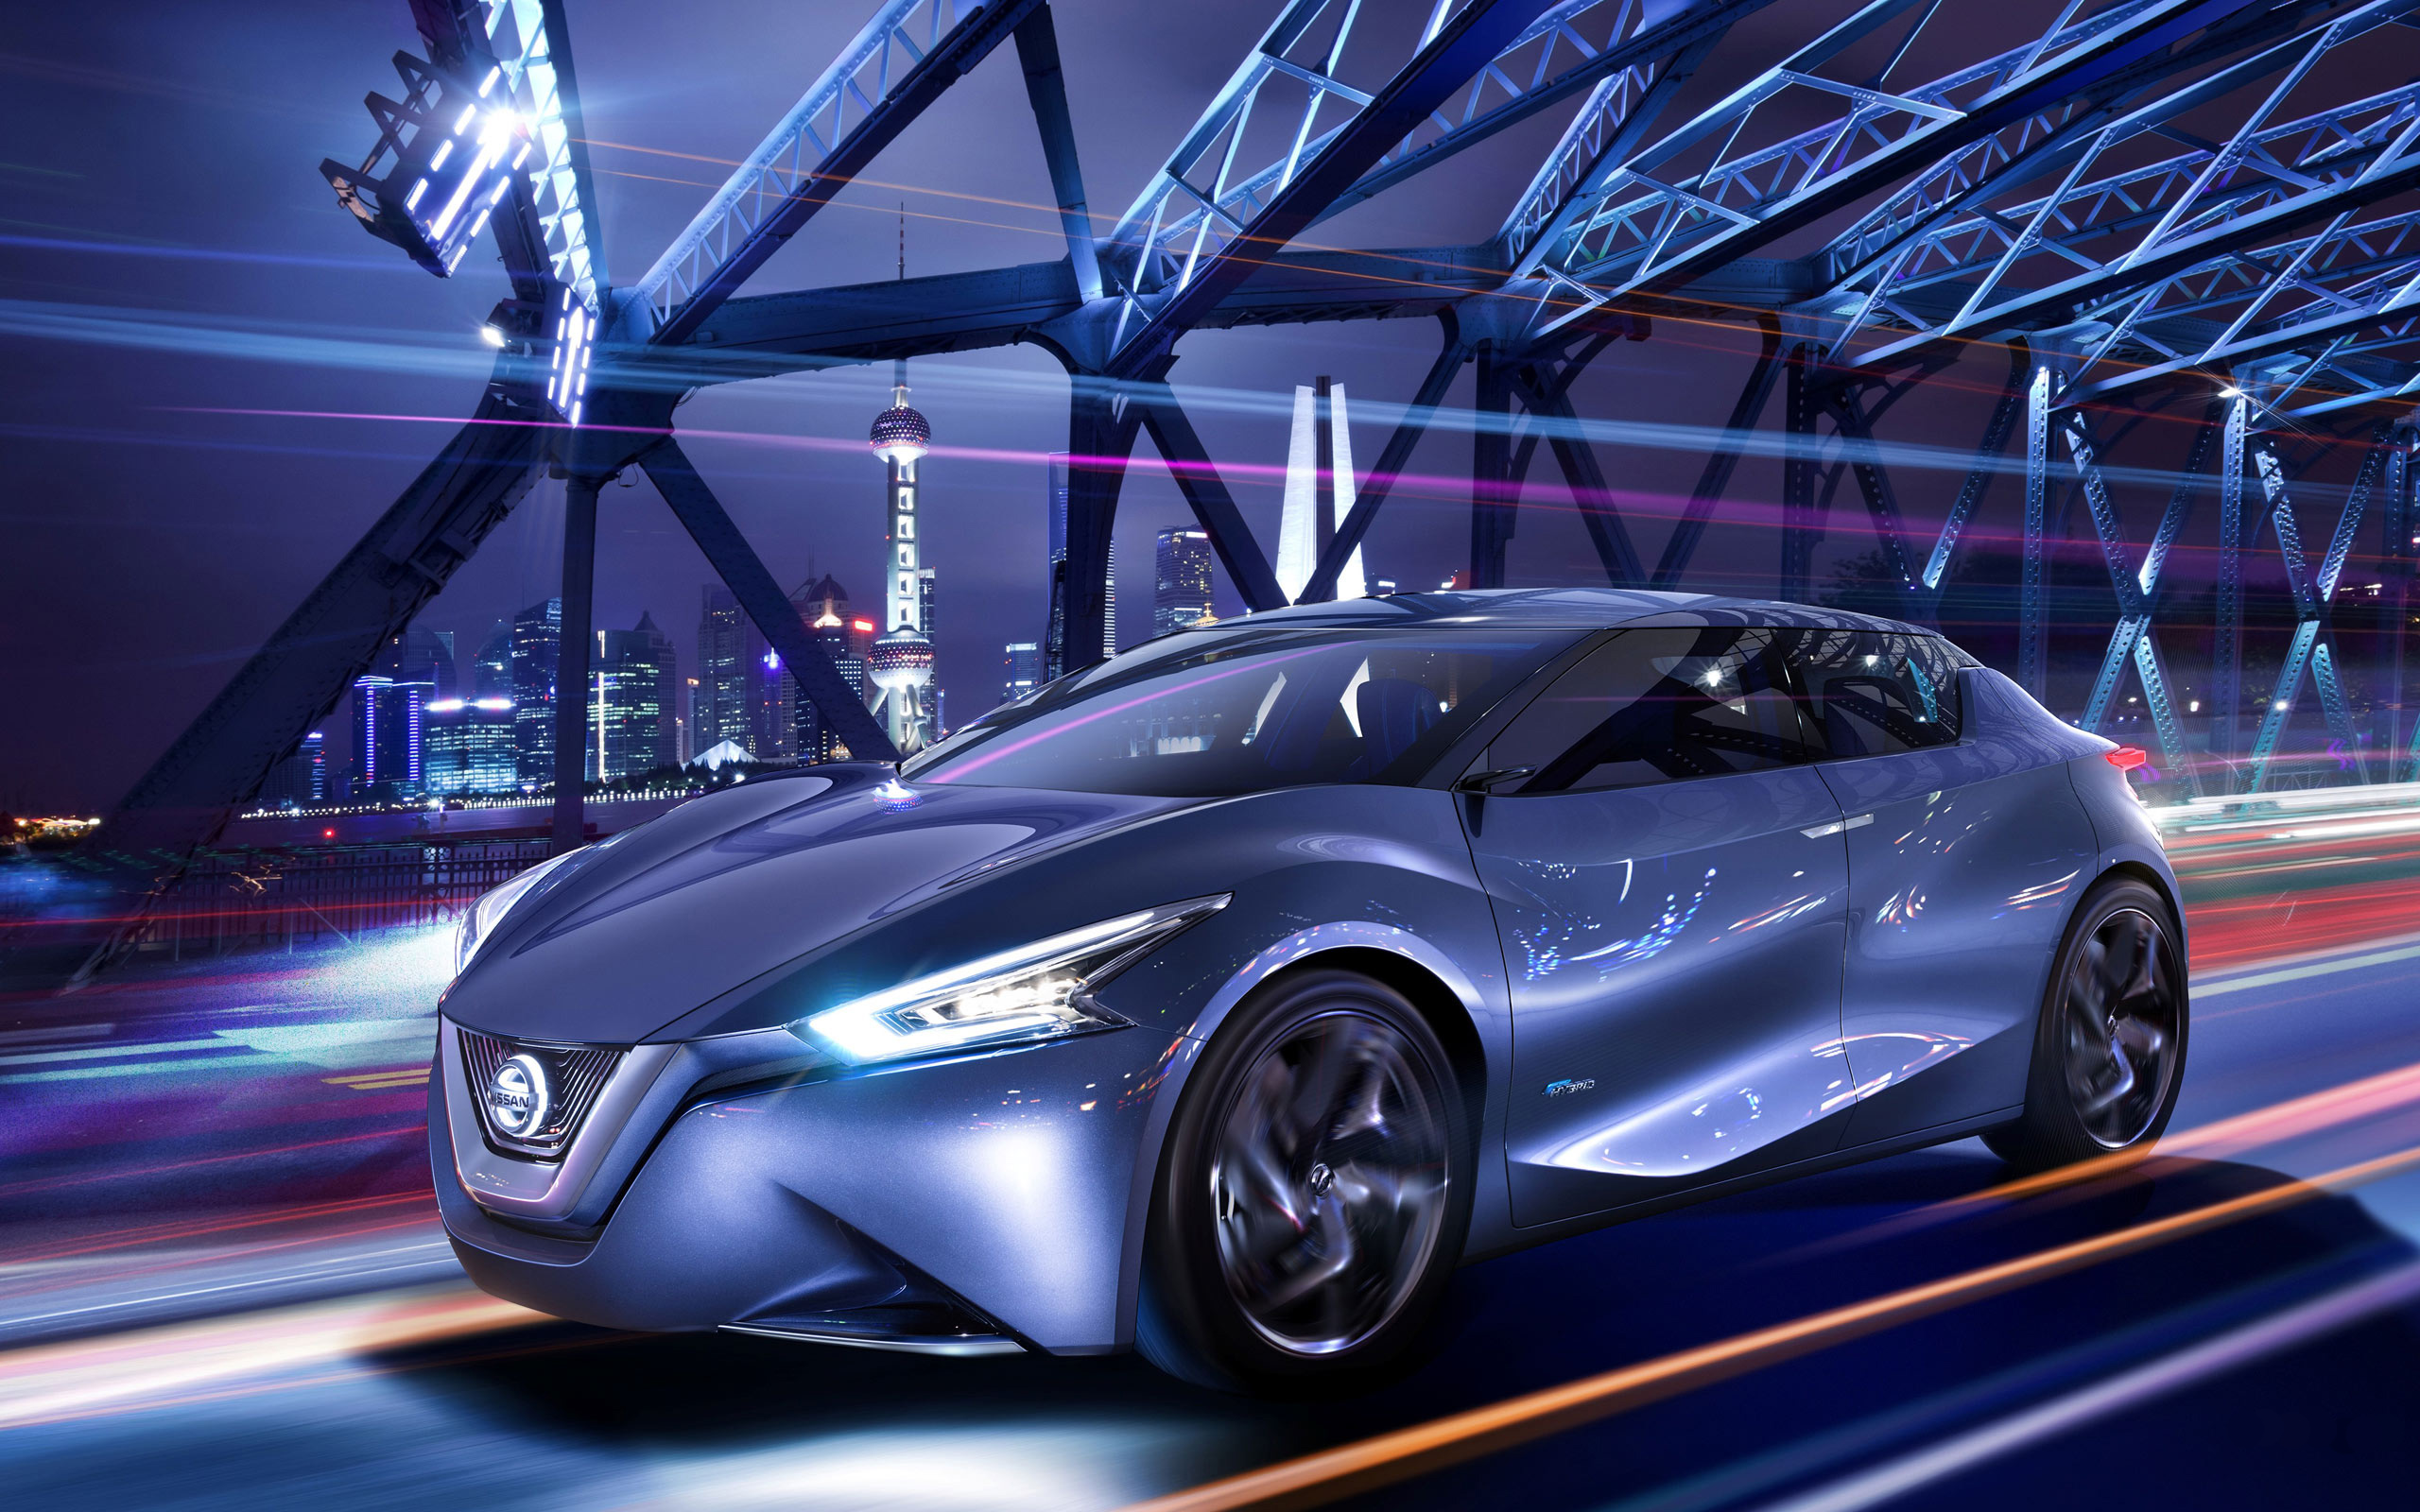 2560x1600 - Nissan Concept Wallpapers 10